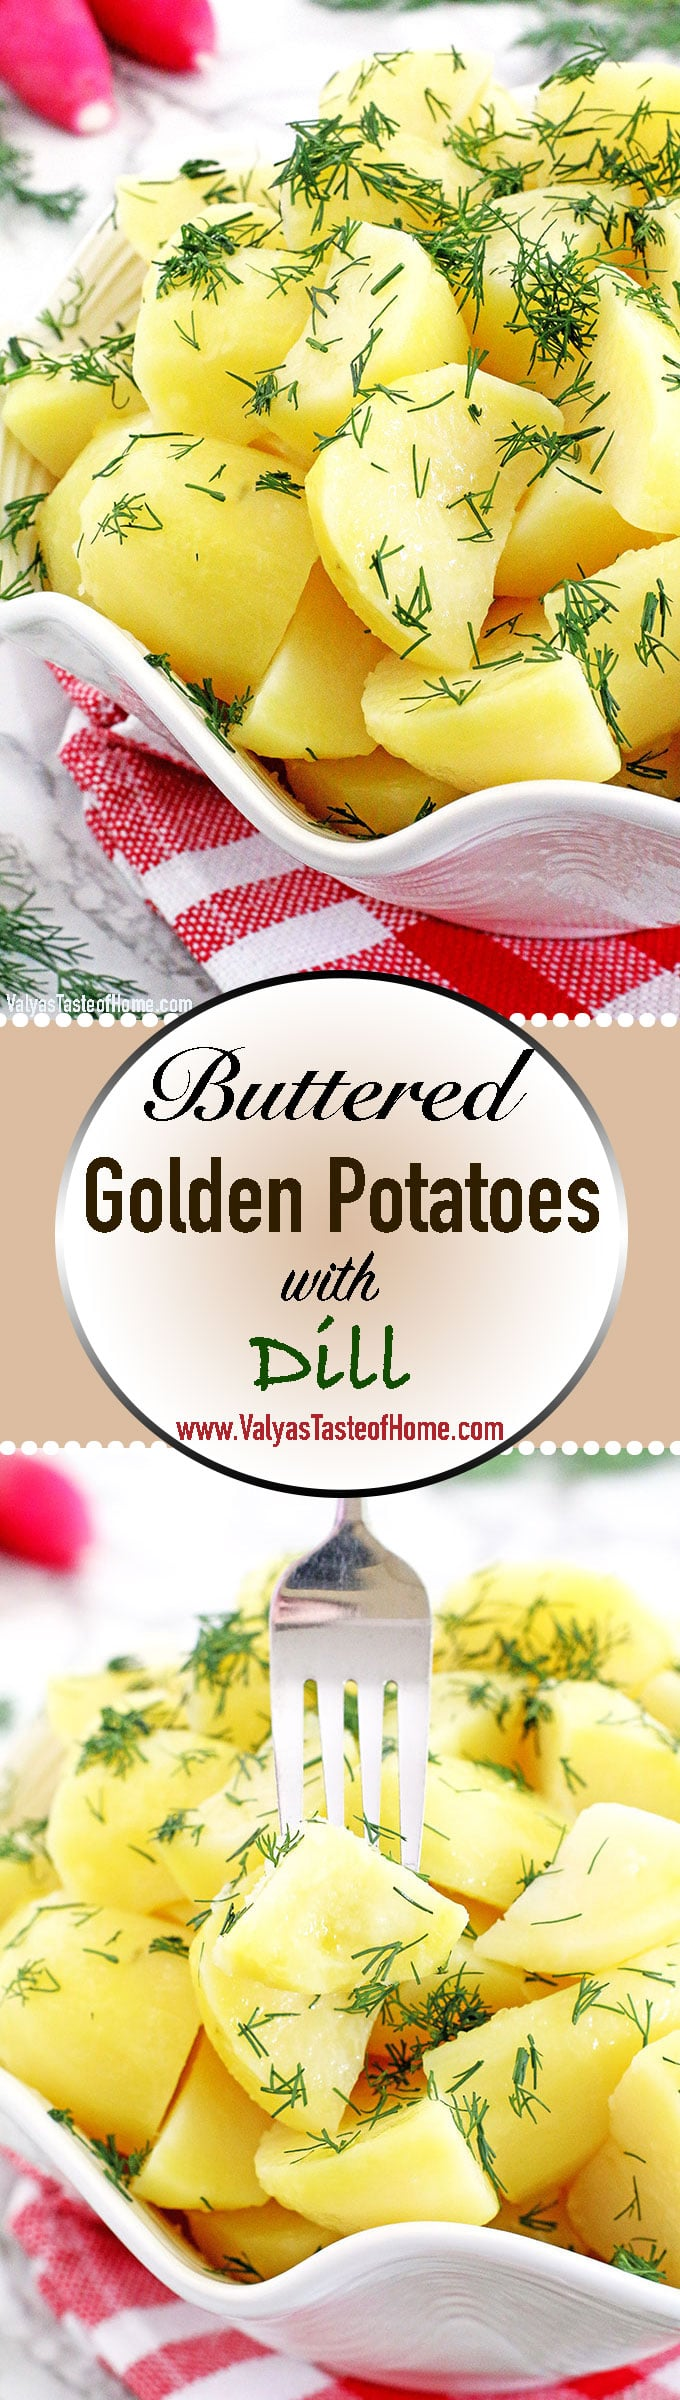 A simply prepared recipe is usually the one that turns out to be the best-tasting and most loved go-to dishes. This classic Buttered Golden Potatoes with Dill is one of those for us. Filling potato chunks coated with savory butter, sprinkled with fresh garden-grown dill to make such a simple yet tasty and comforting dish.